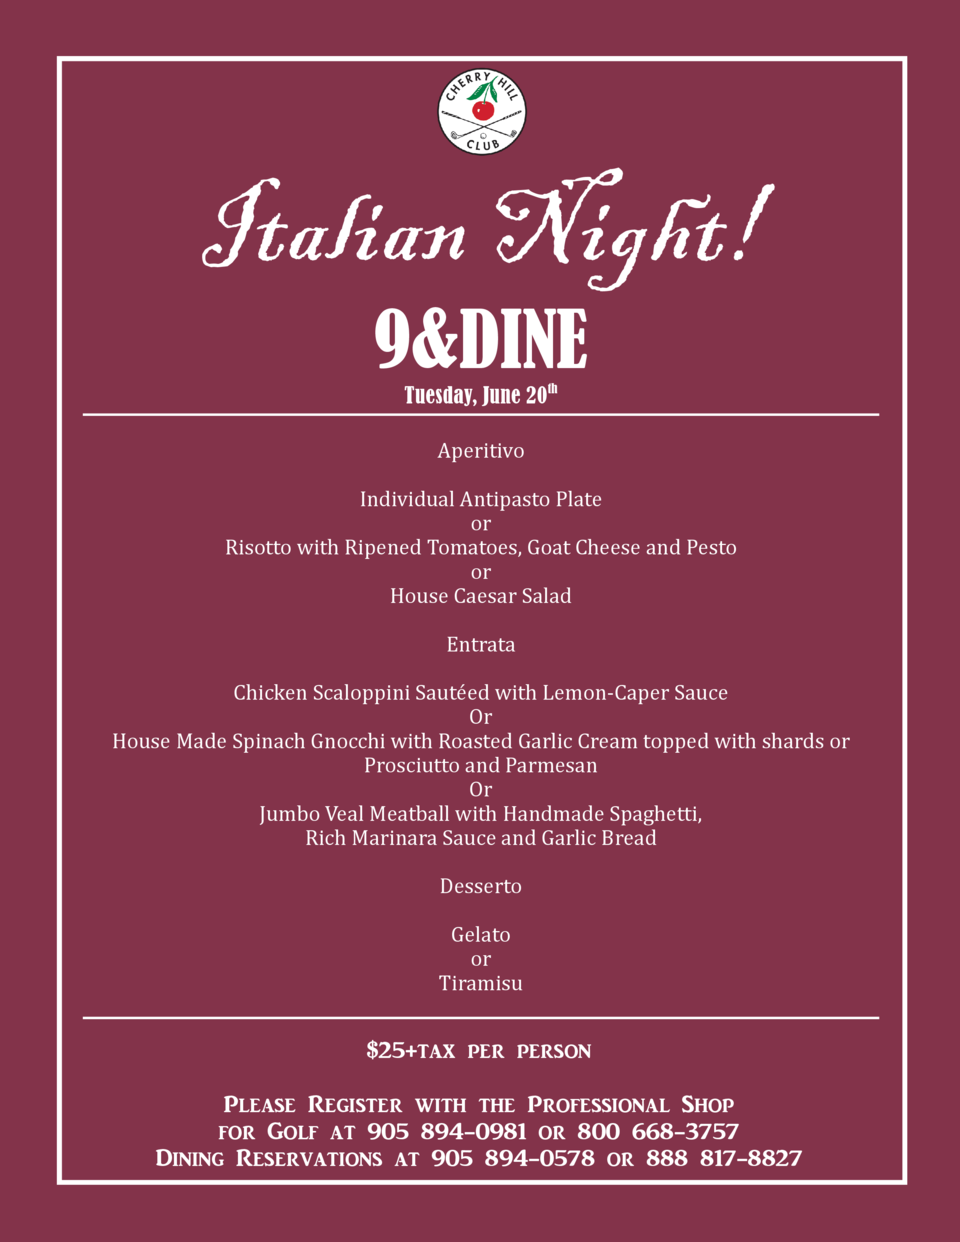 Italian Night  9 DINE Tuesday, June 20th Aperitivo Individual Antipasto Plate or Risotto with Ripened Tomatoes, Goat Chees...